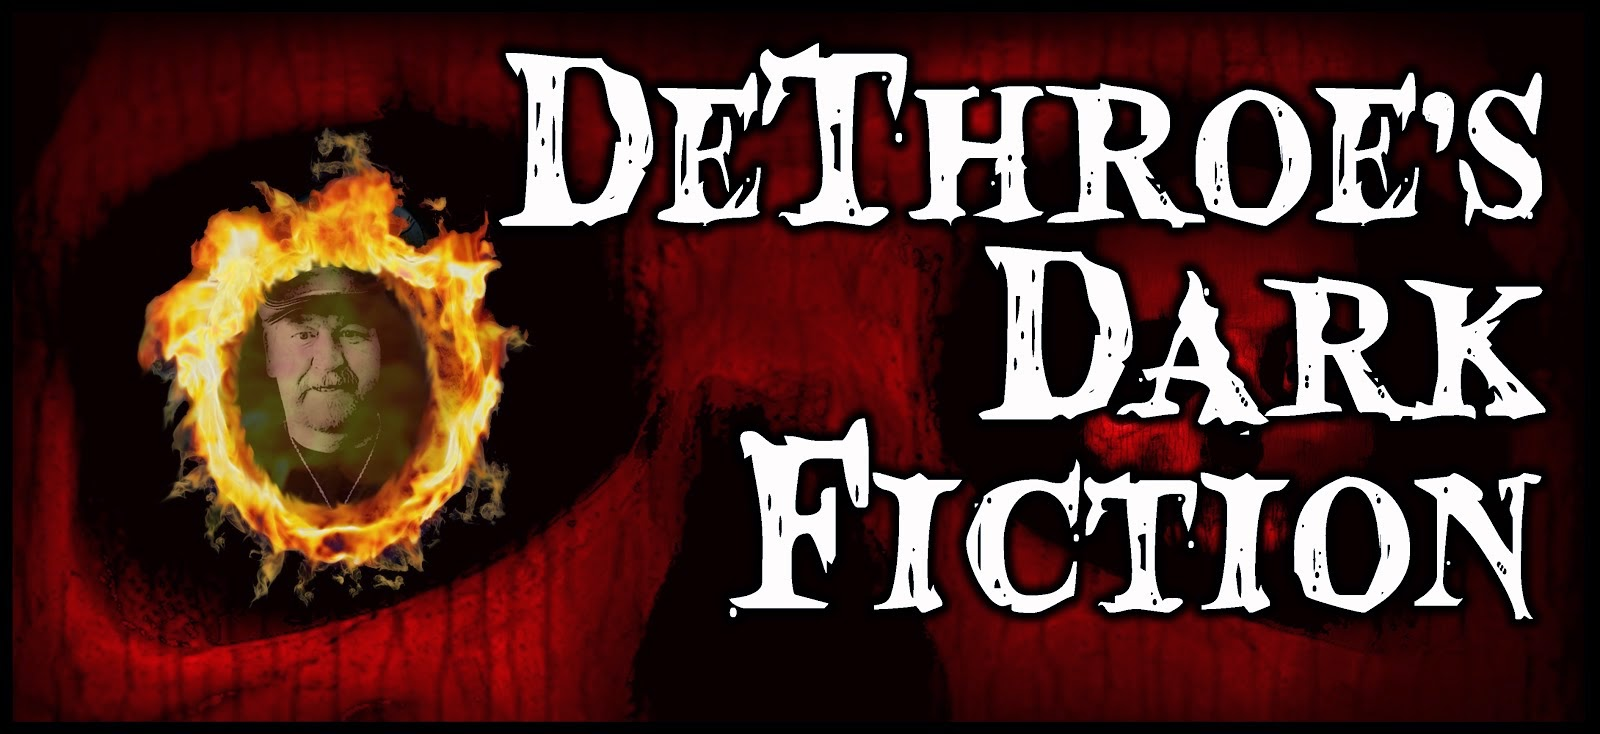 Paul DeThroe's Dark Fiction Blog